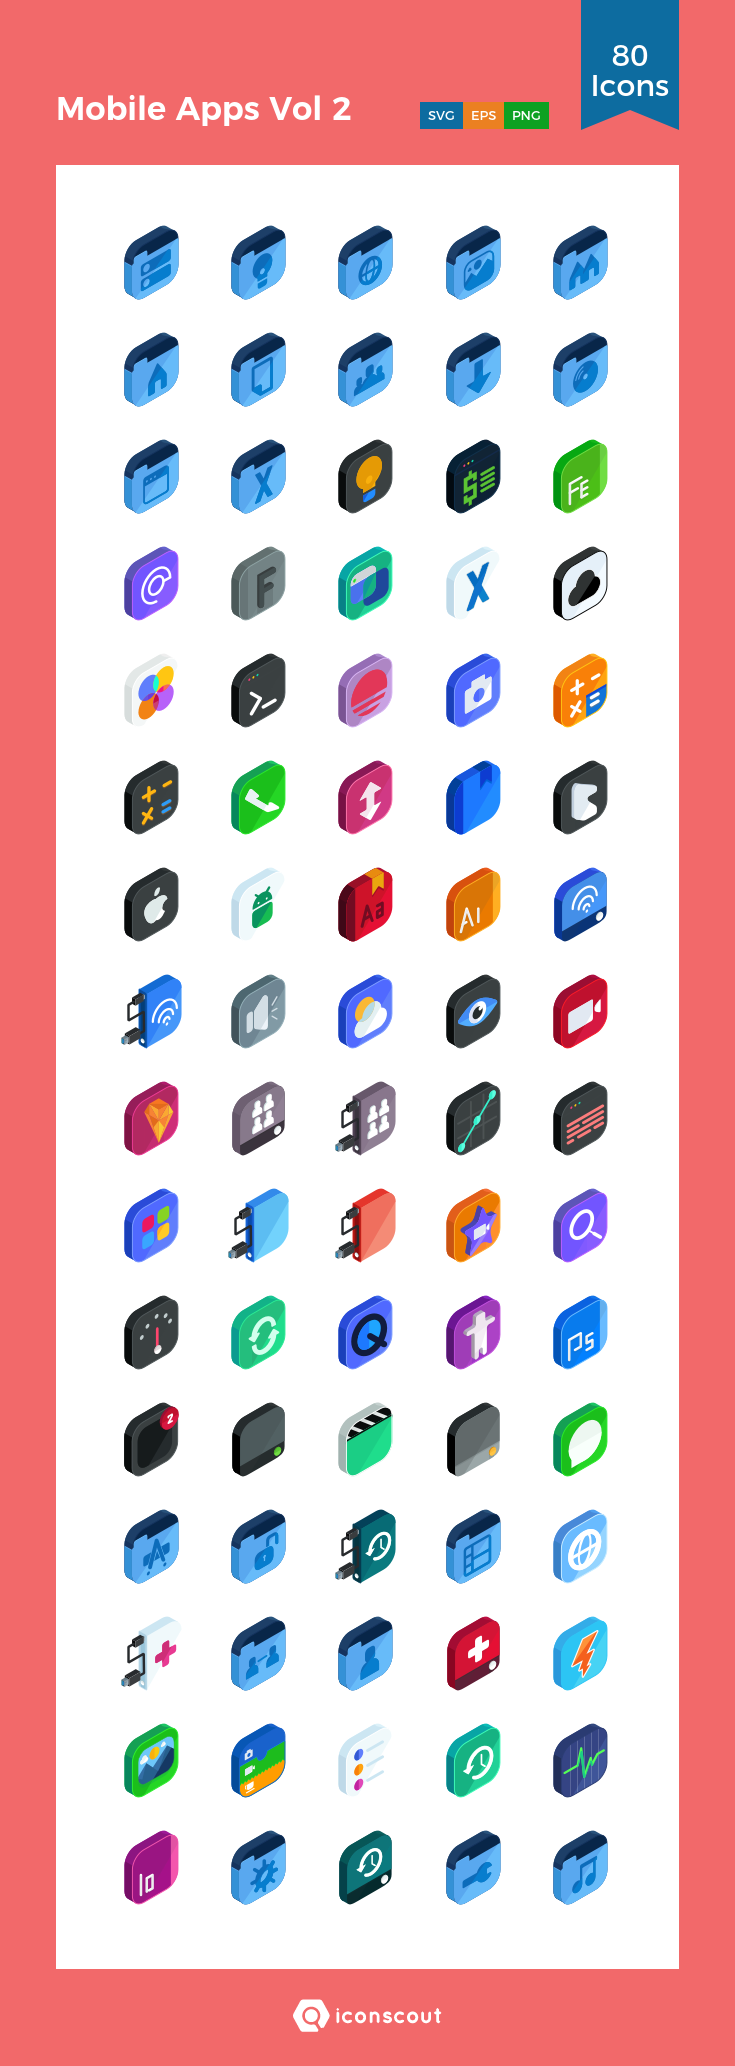 Download Download Mobile Apps Vol 2 Icon pack - Available in SVG ...